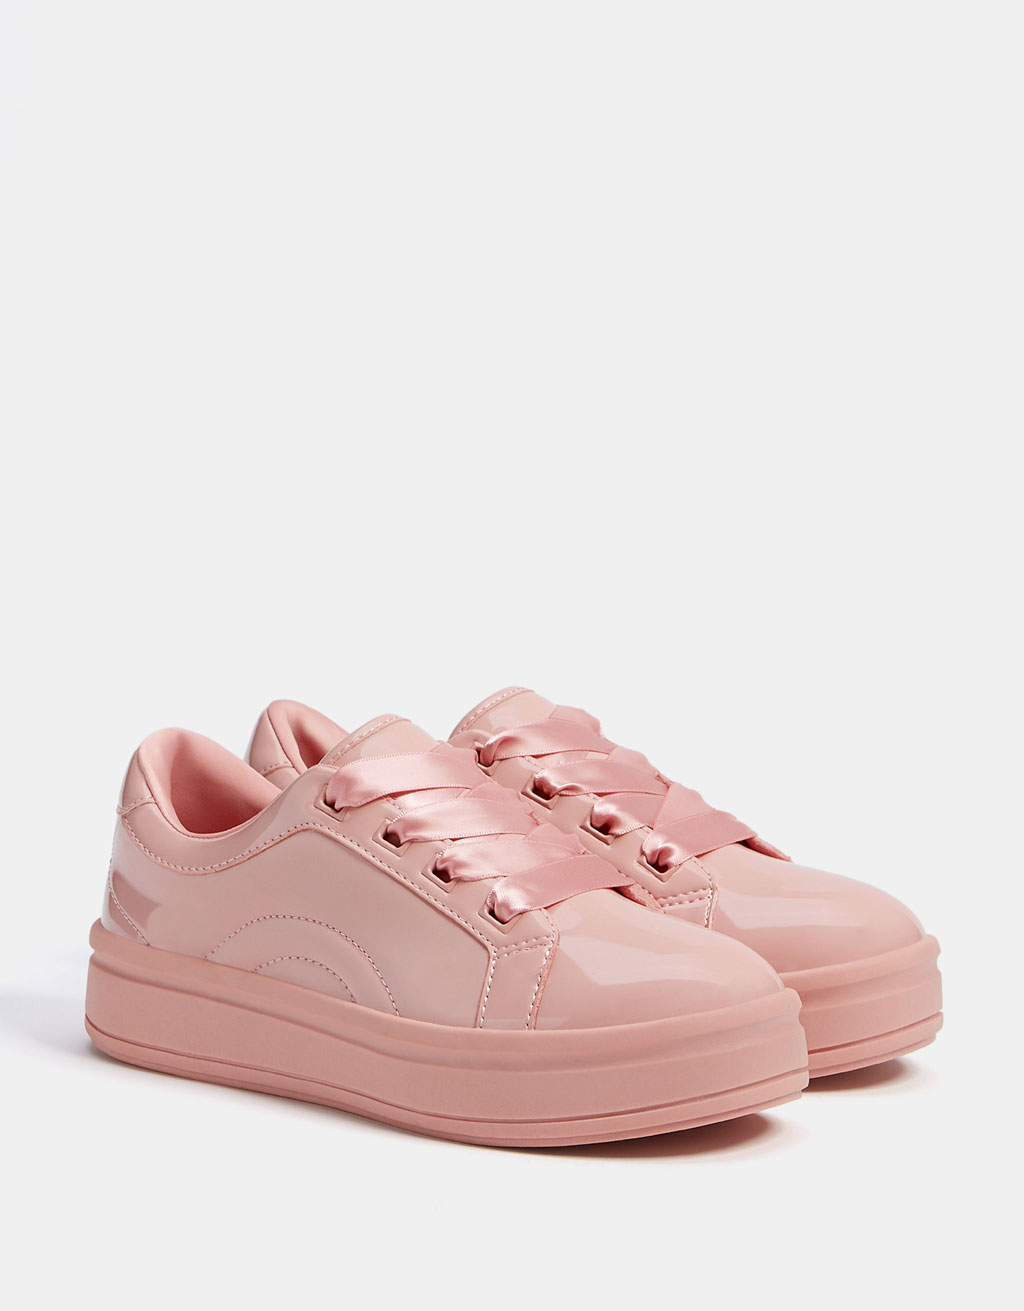 Monochrome faux patent sneakers with satin laces